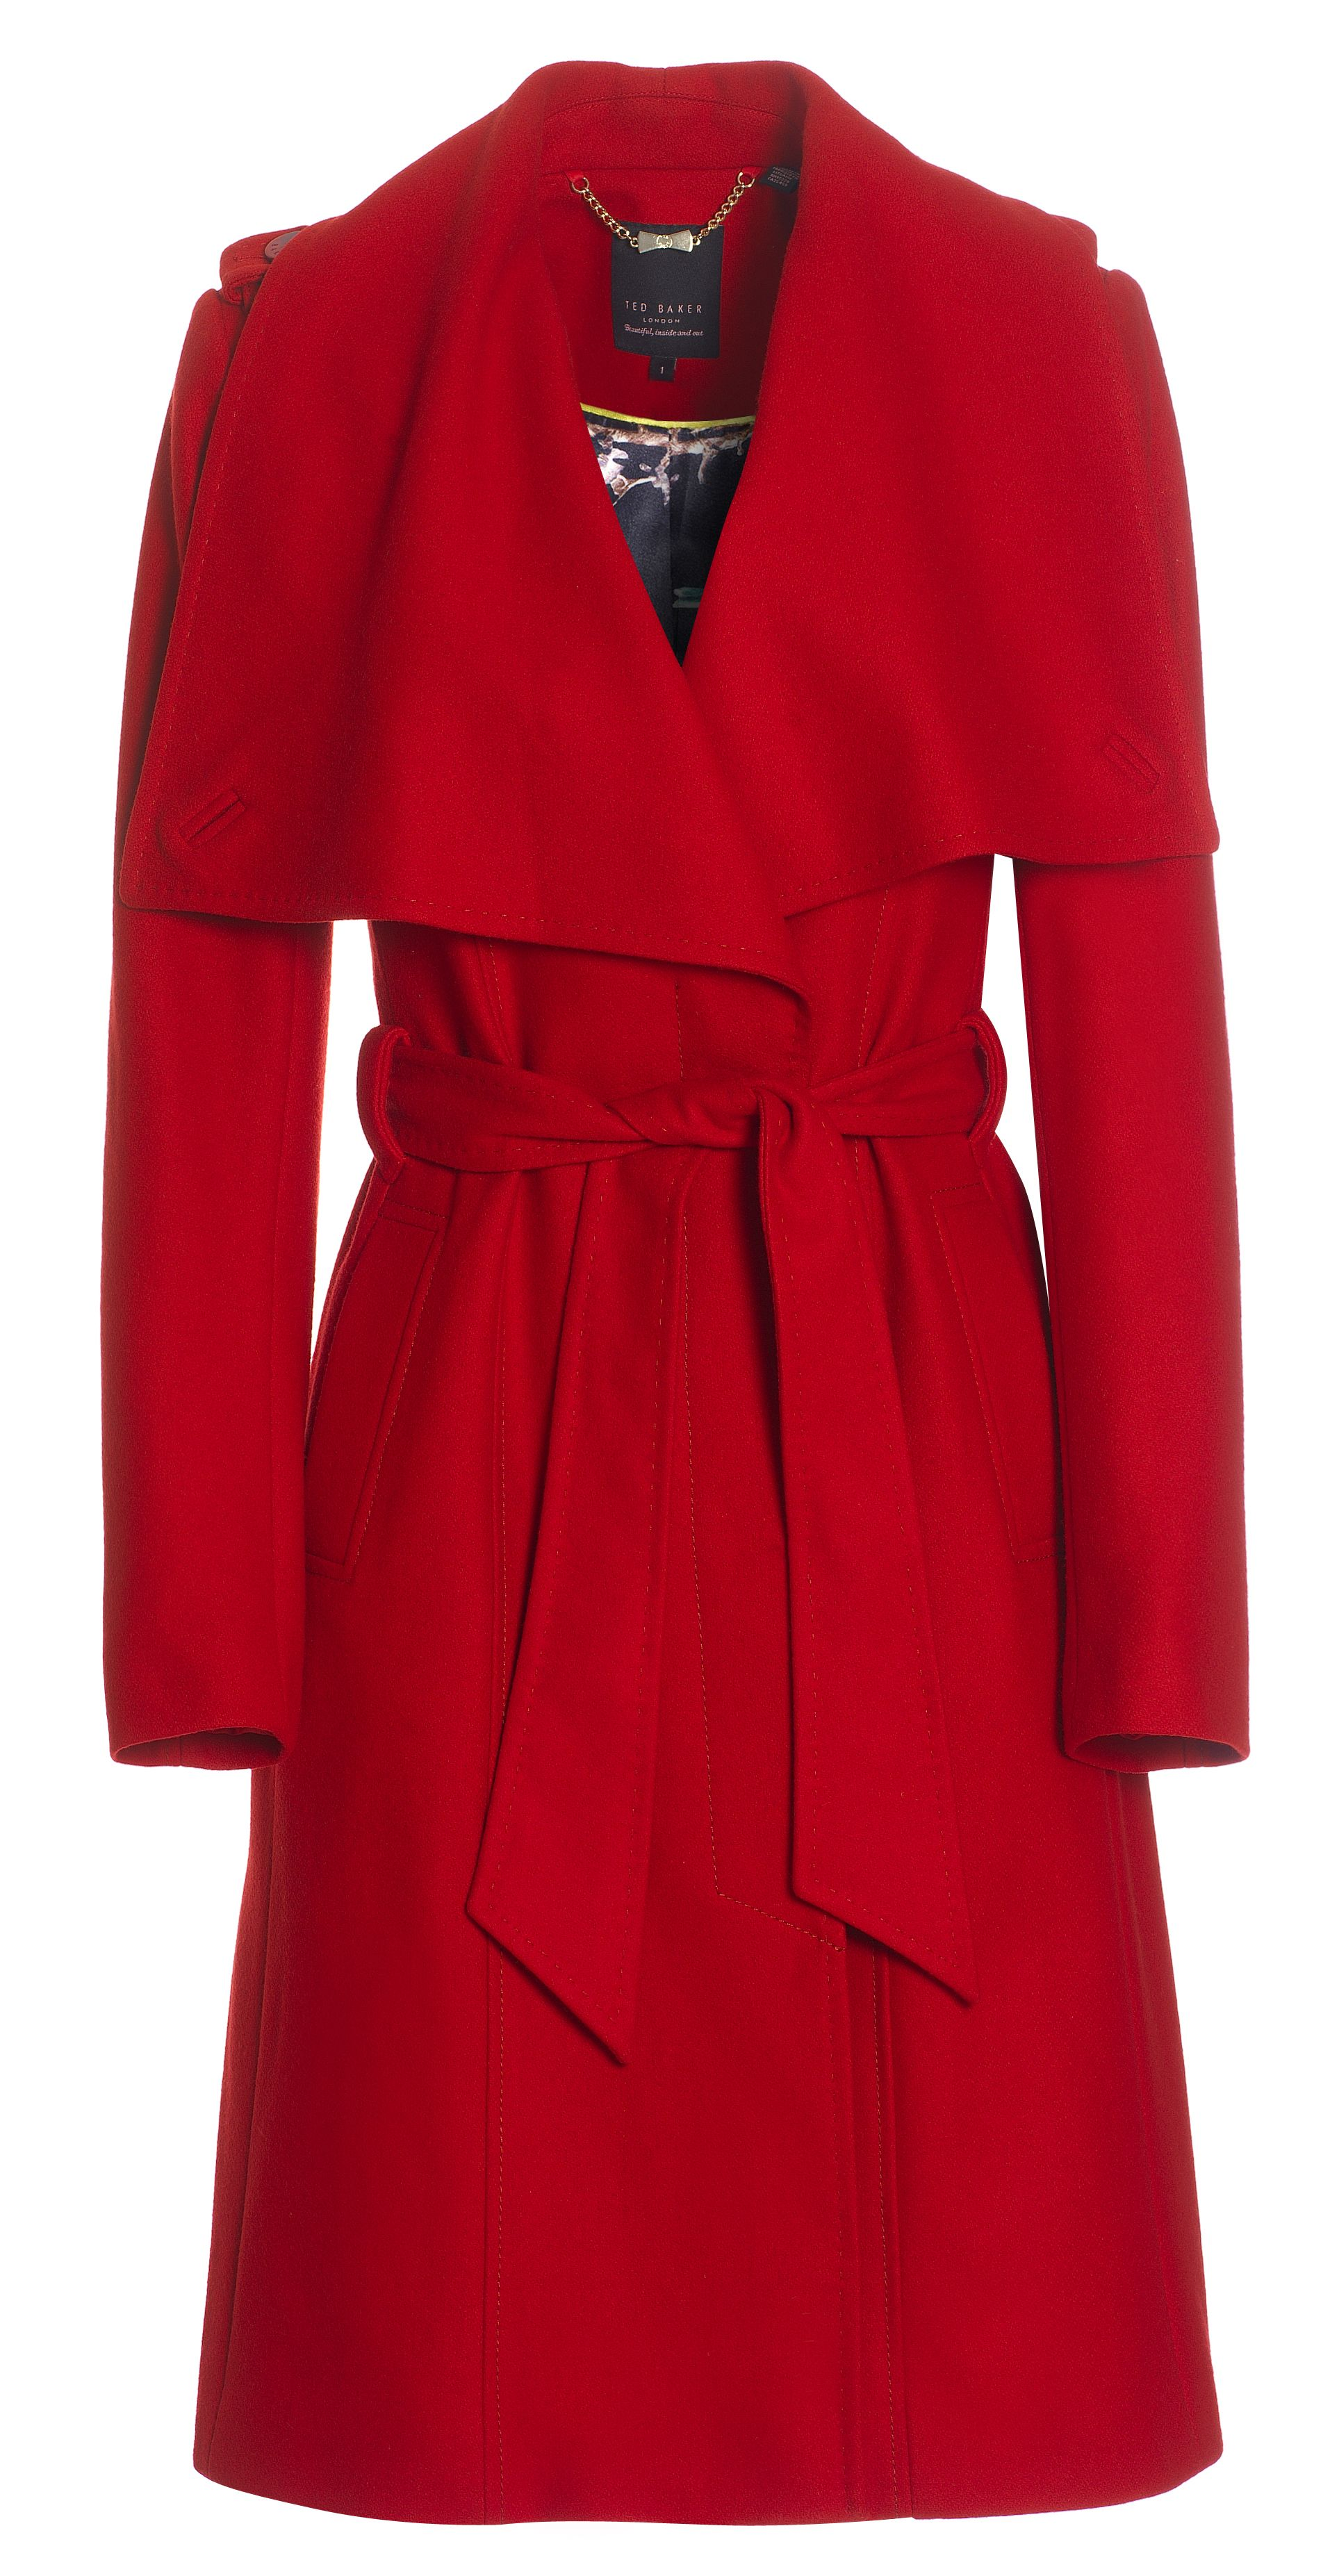 a297ac28868638 Ted Baker red belted coat